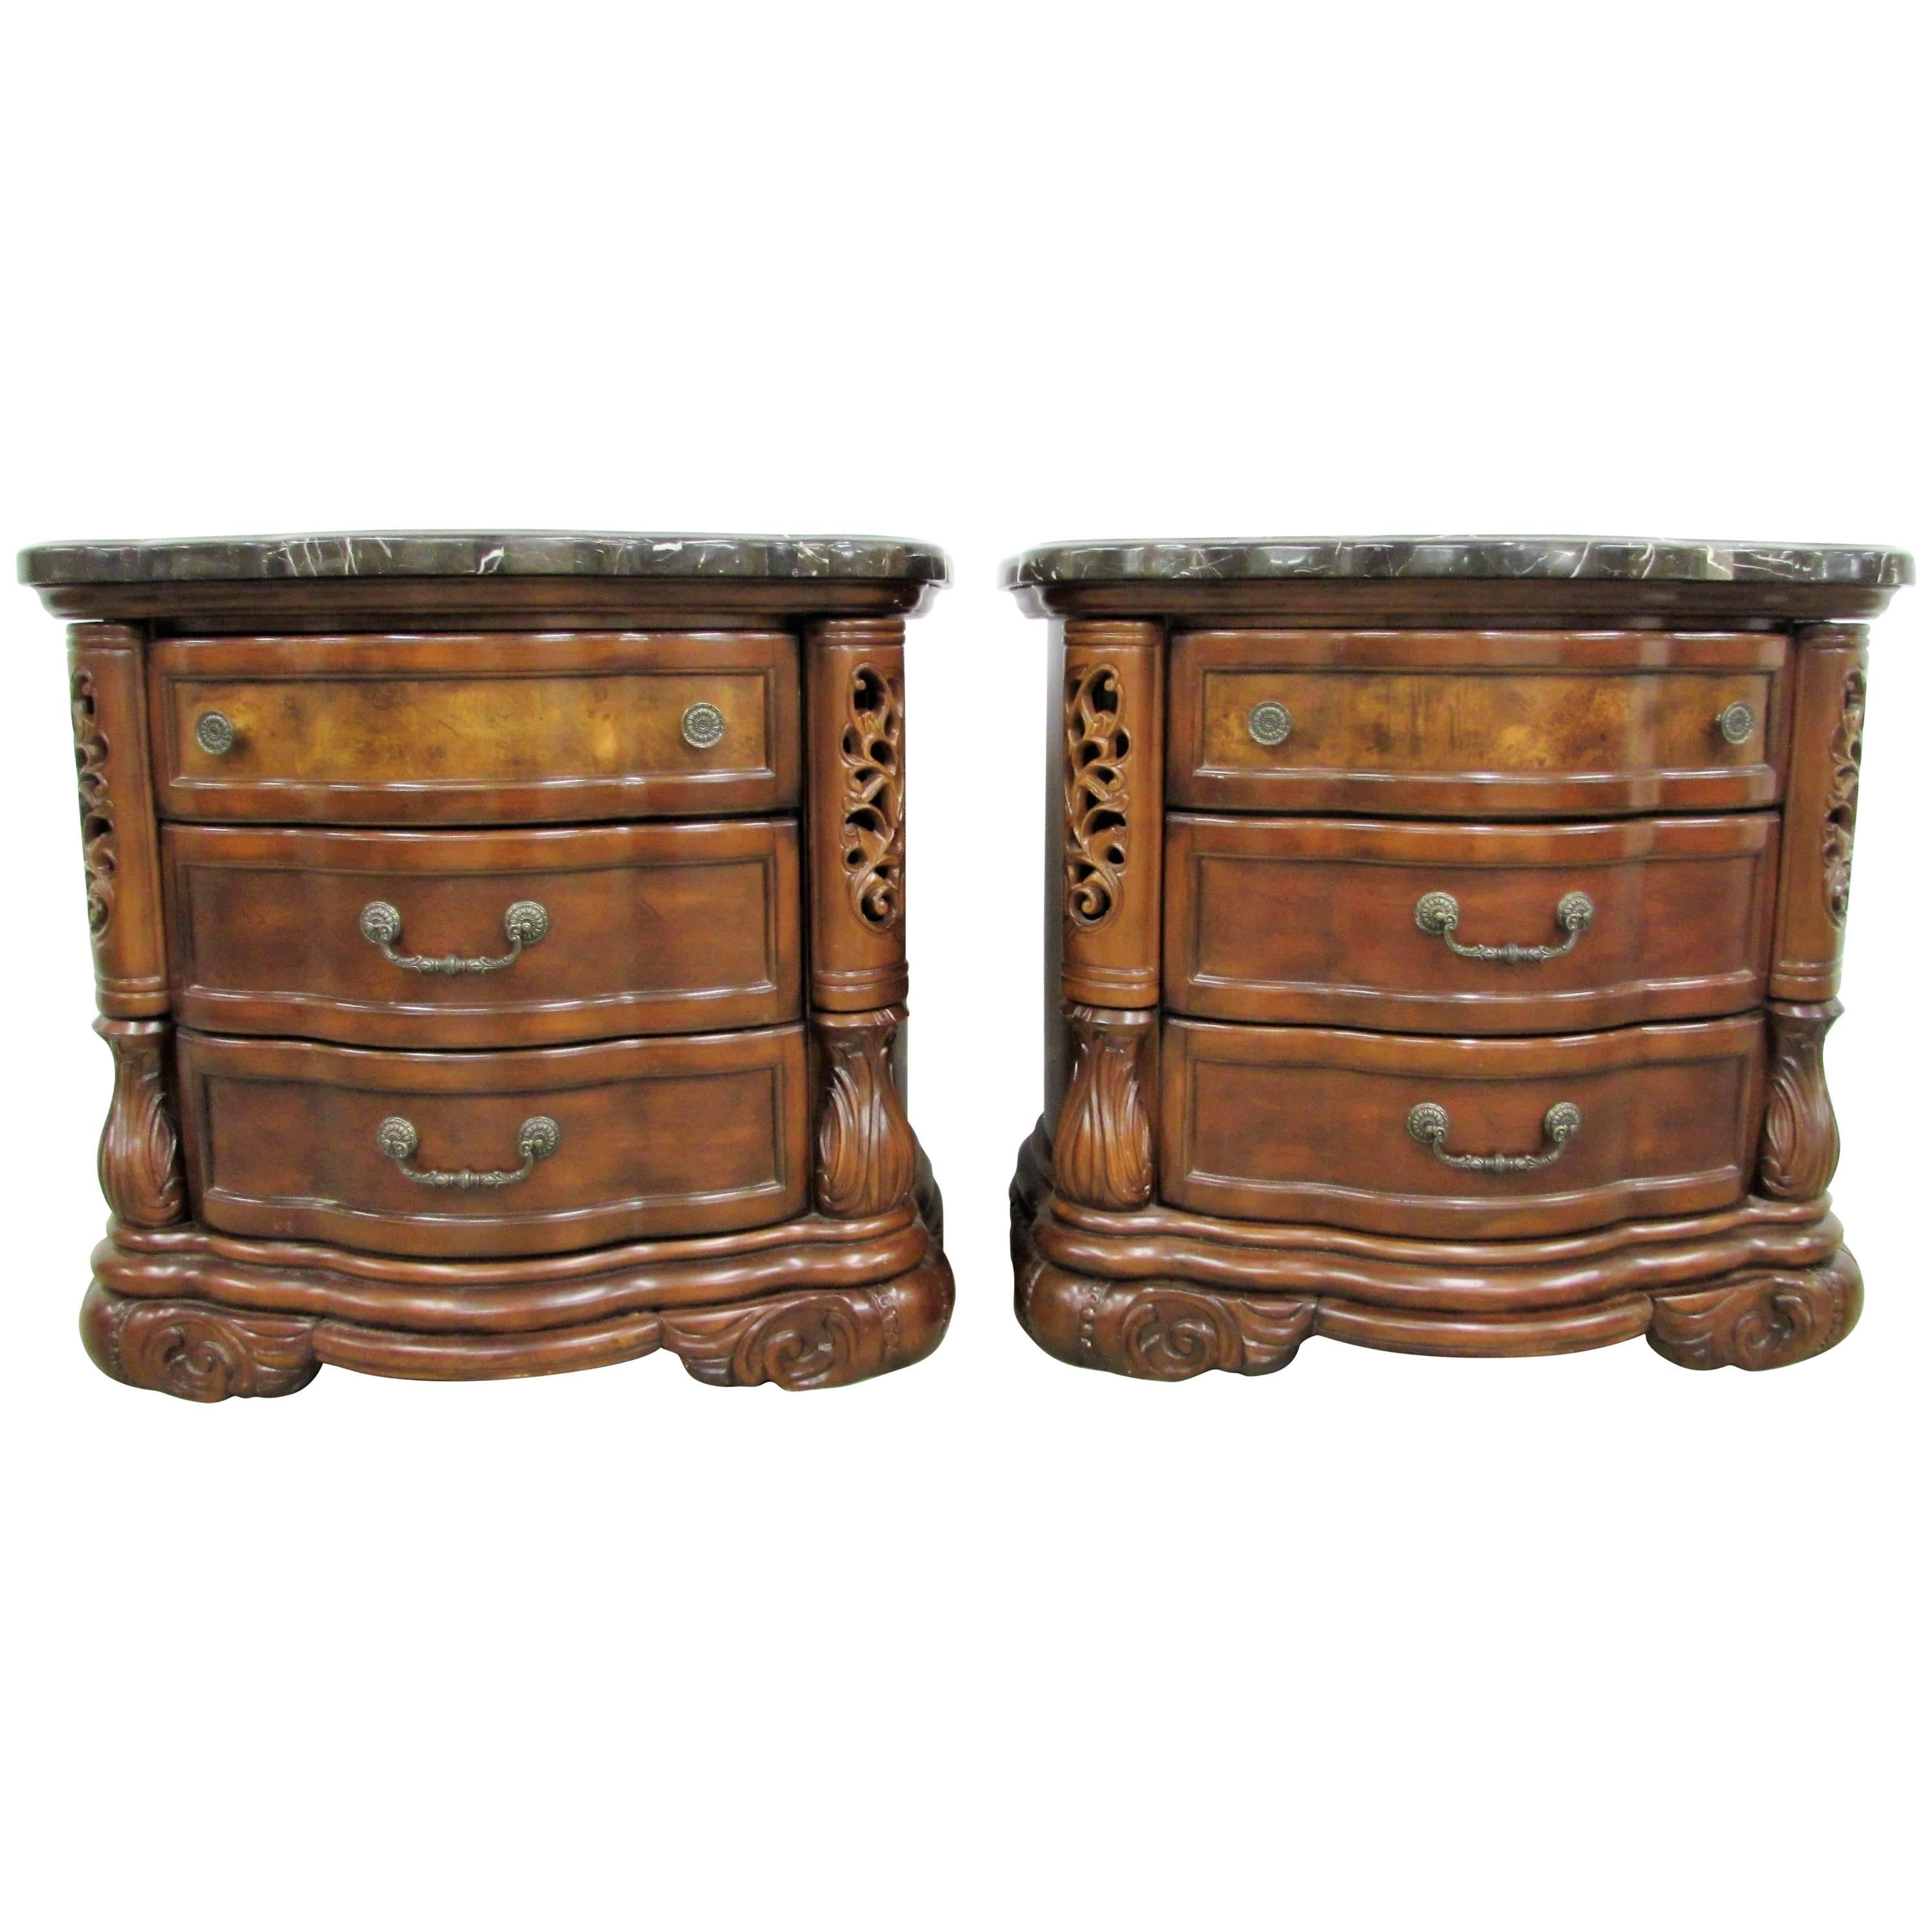 Pair Of Michael Amini Bedside Chests With Tessellated Marble For Sale